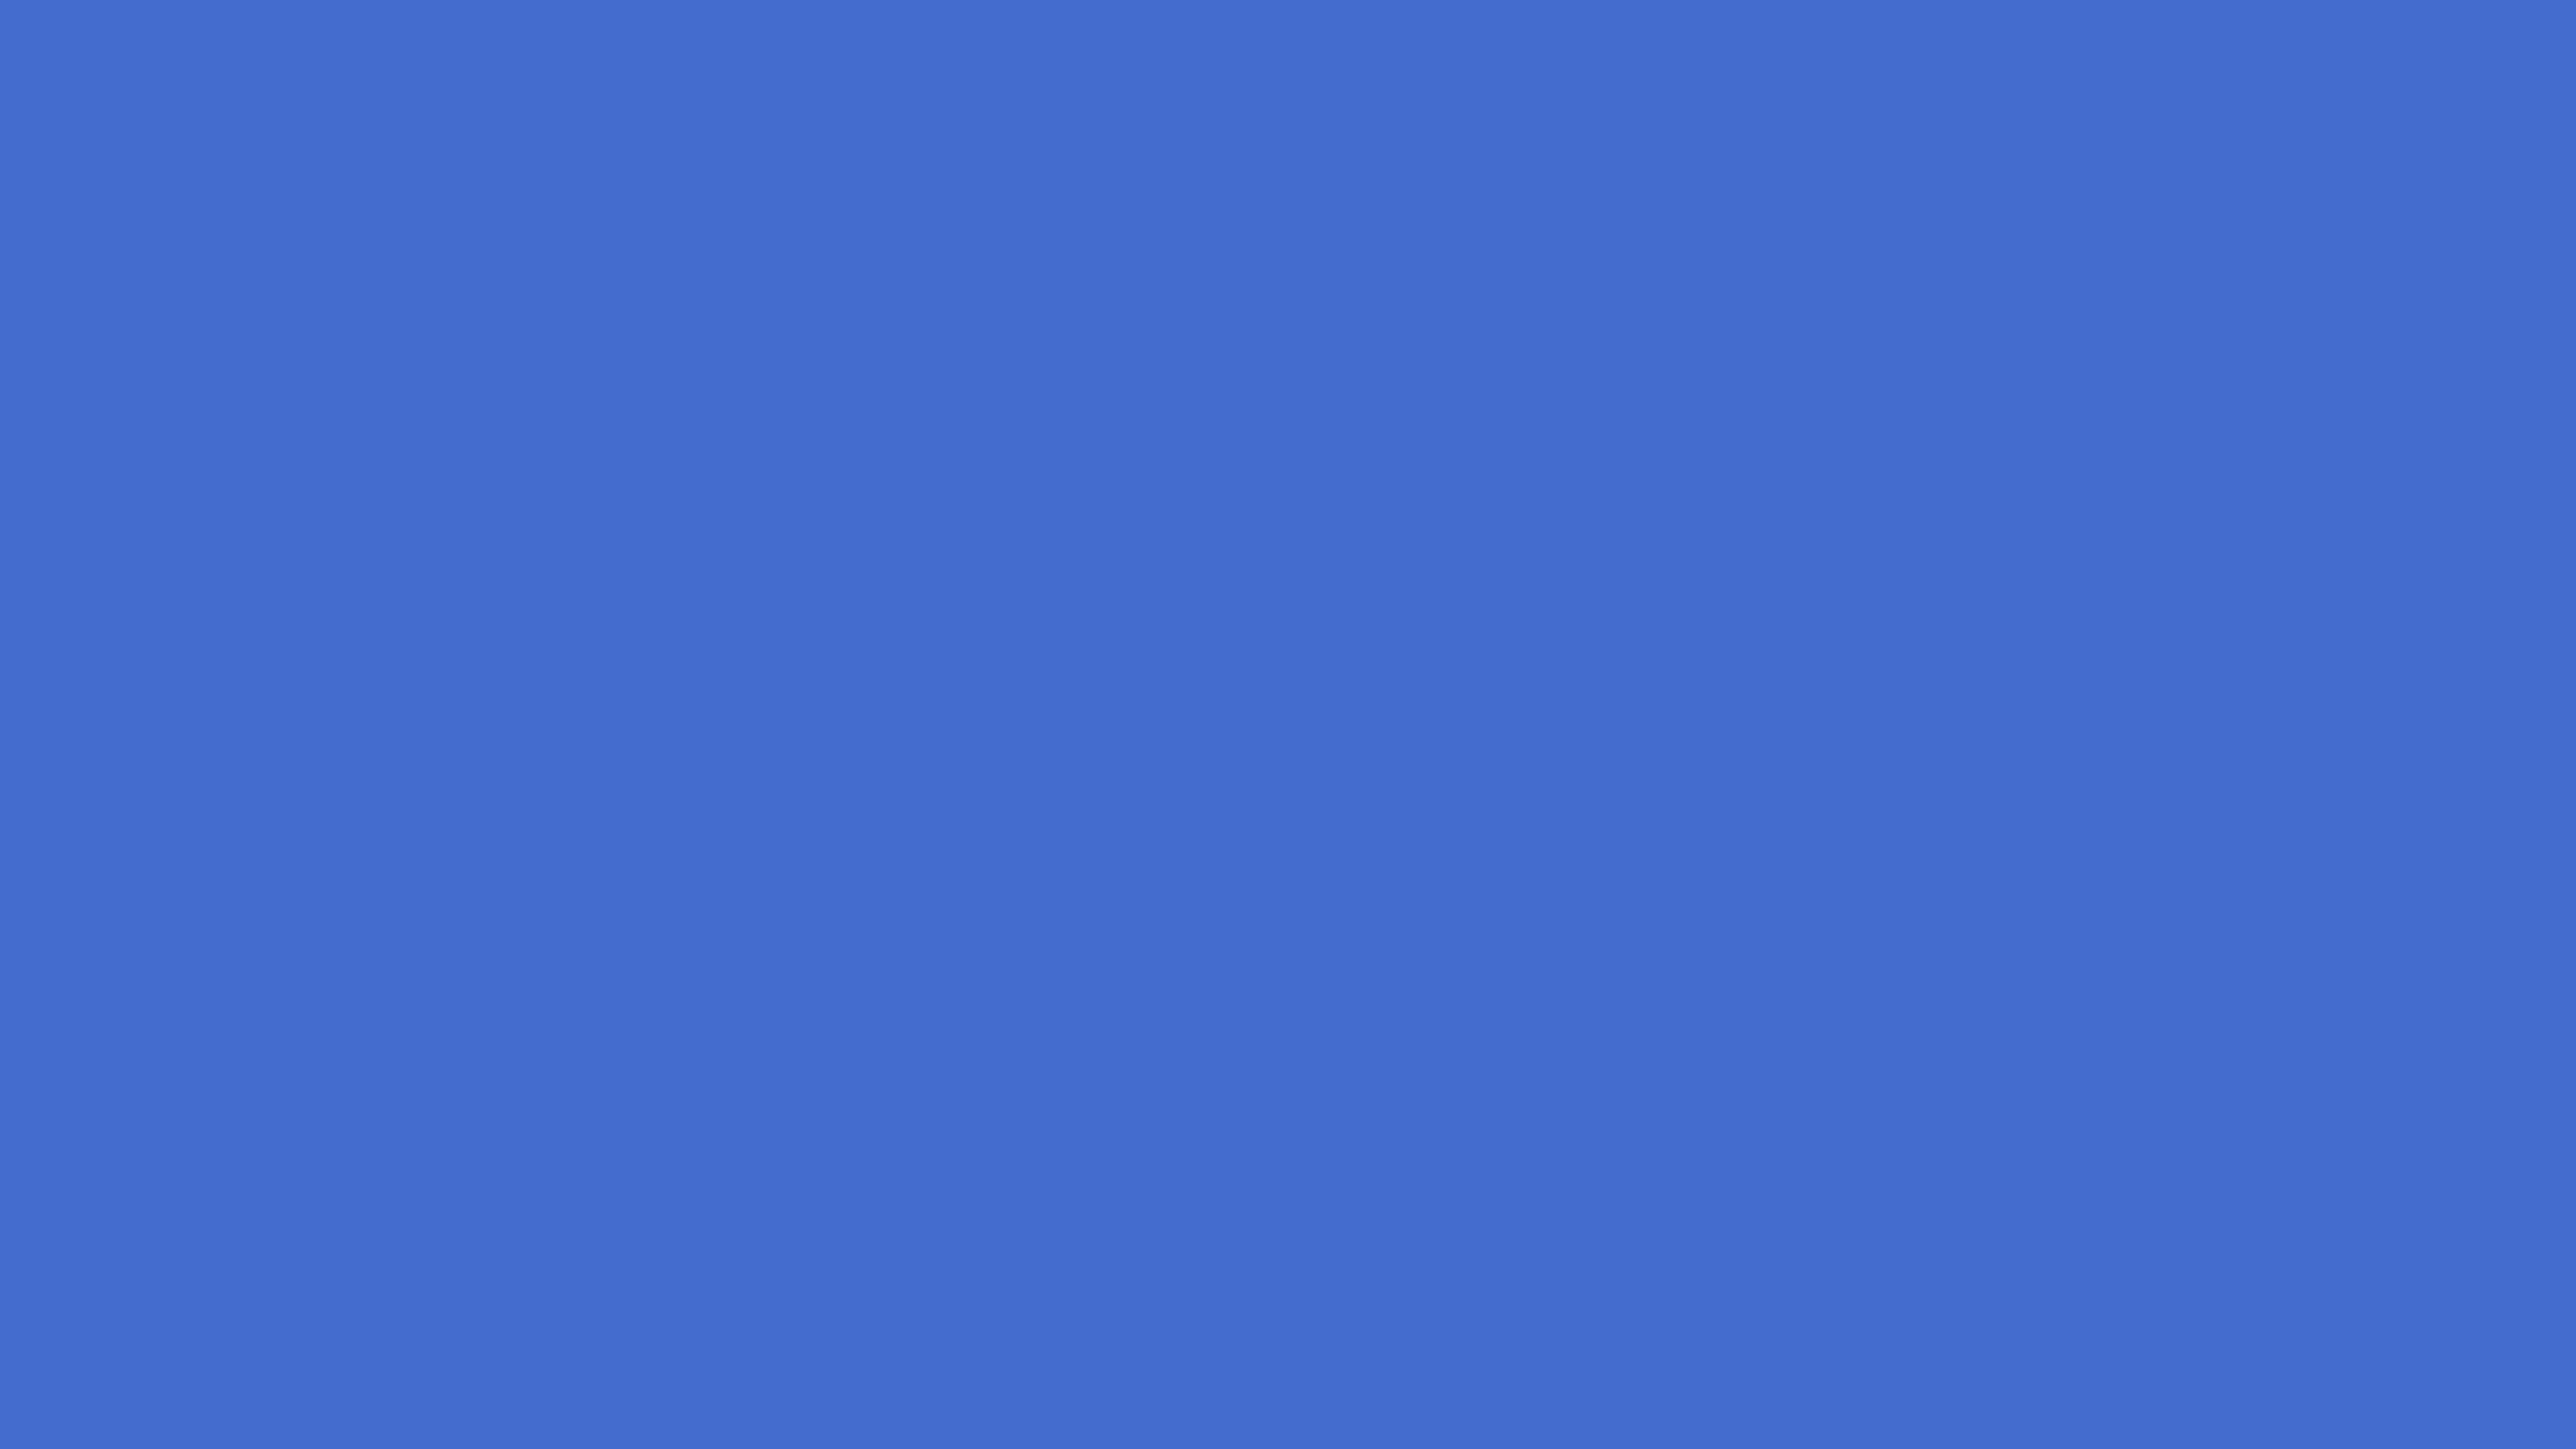 7680x4320 Han Blue Solid Color Background